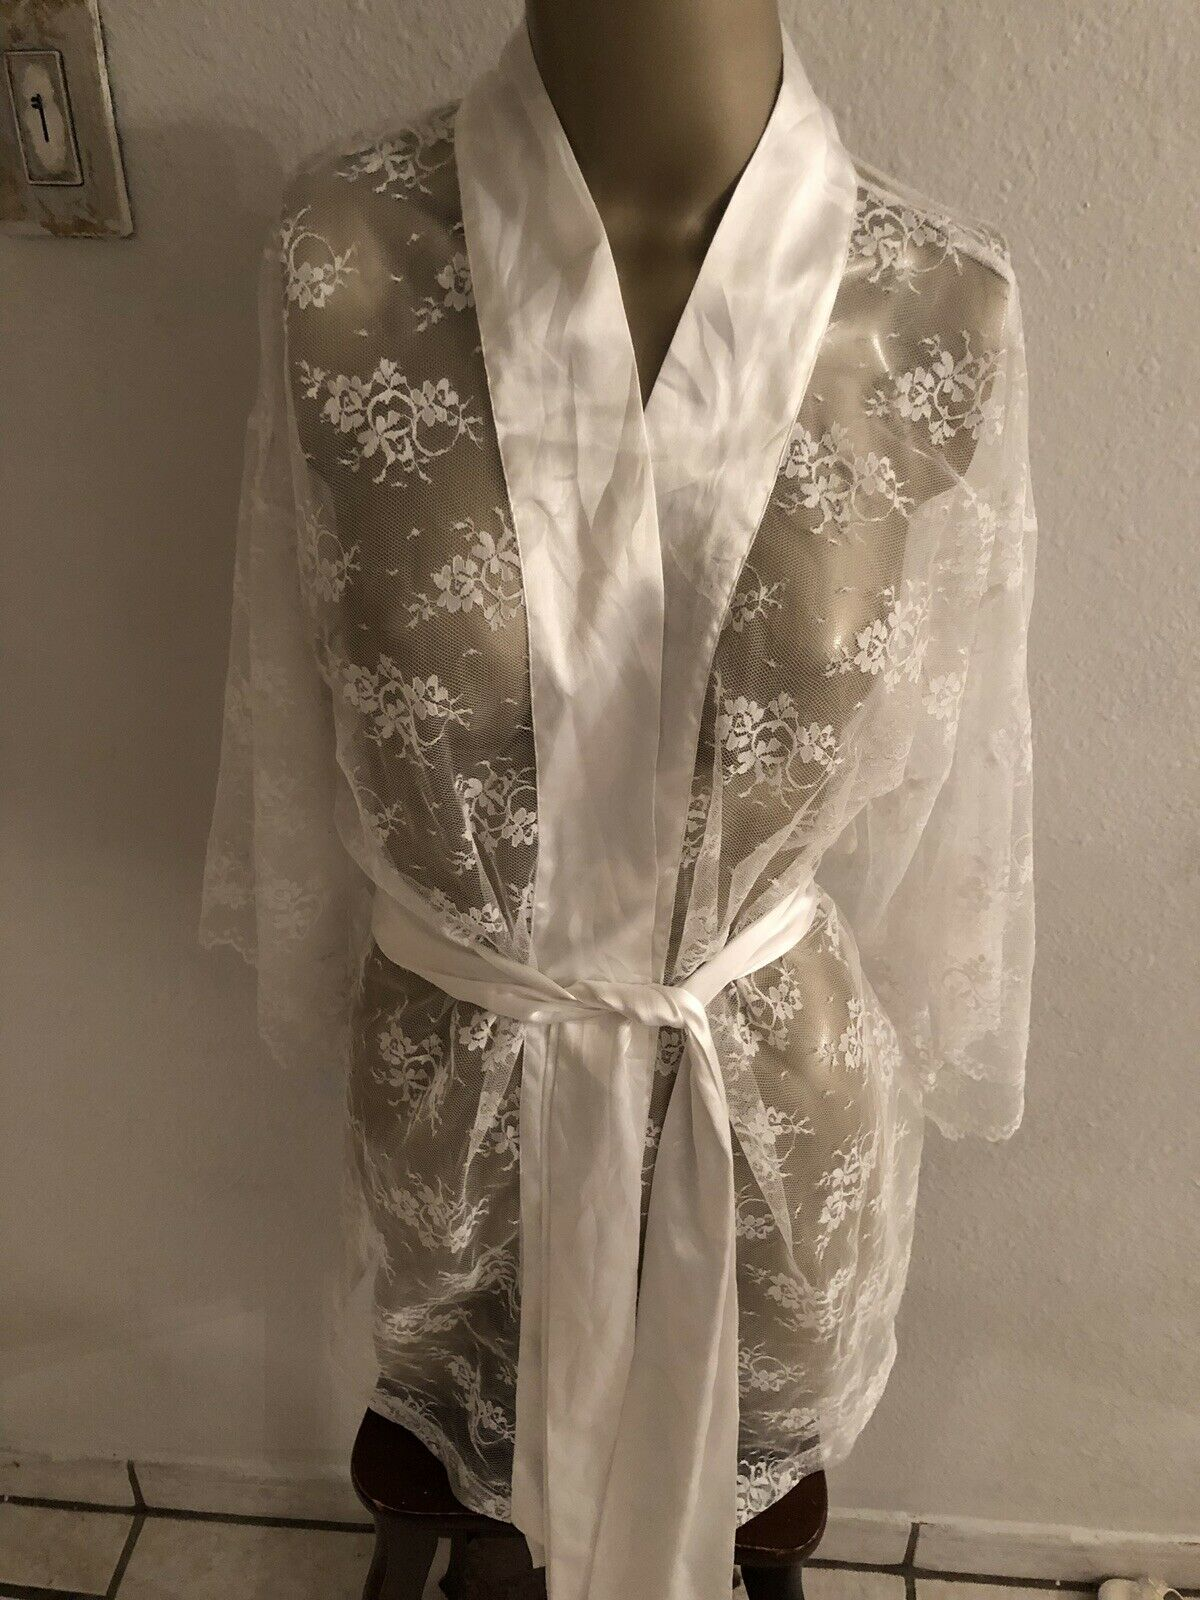 I Do Victorias Secret All Lace White Bride Robe Size OS Lingerie Cover Up Womens